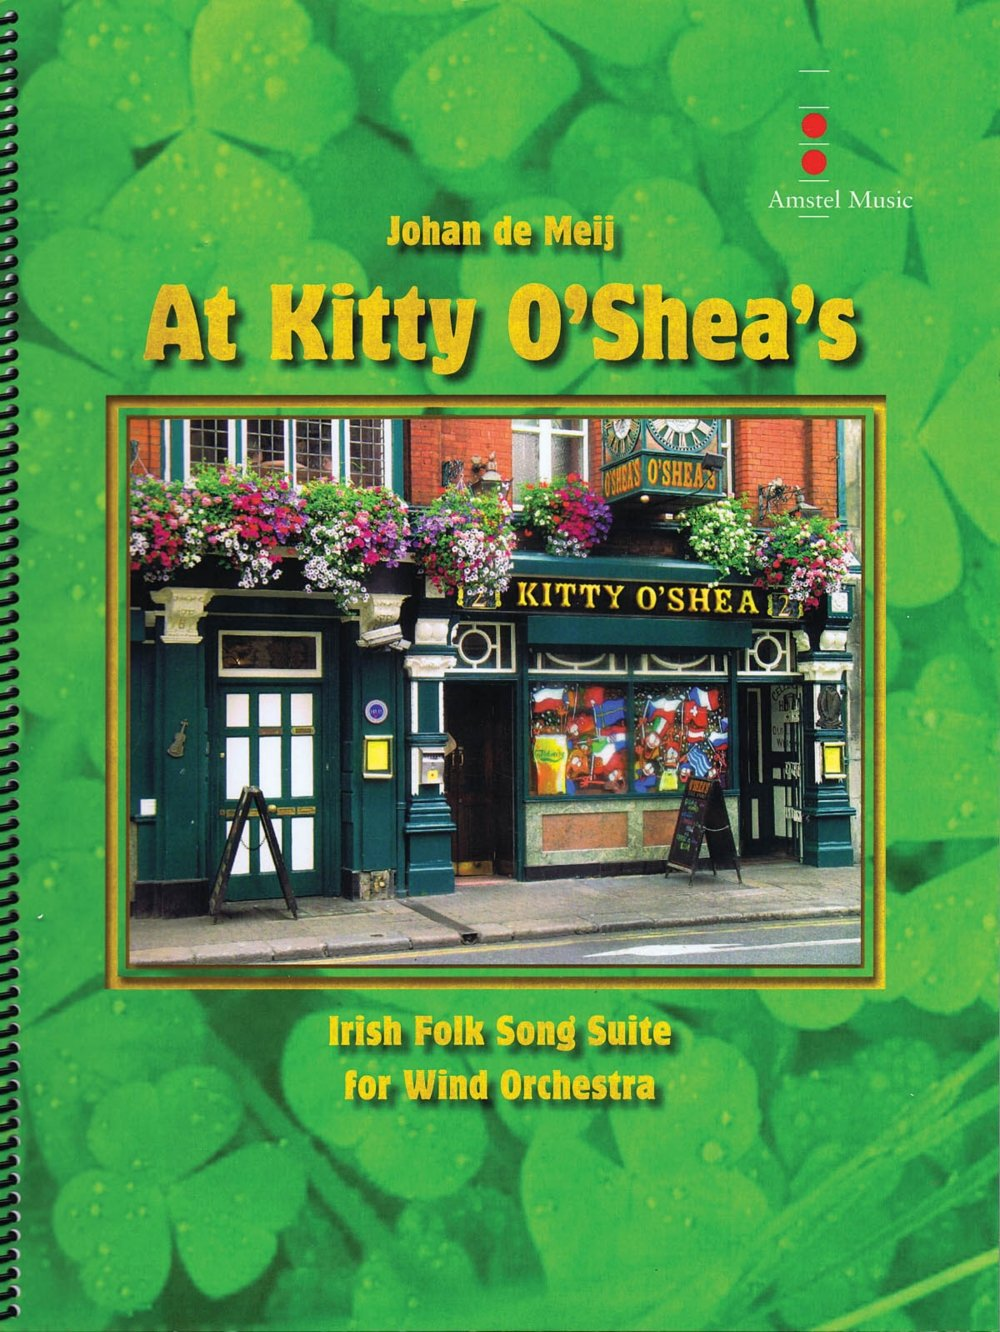 Read Online Amstel Music At Kitty O'Shea's Concert Band Level 4 Composed by Johan de Meij pdf